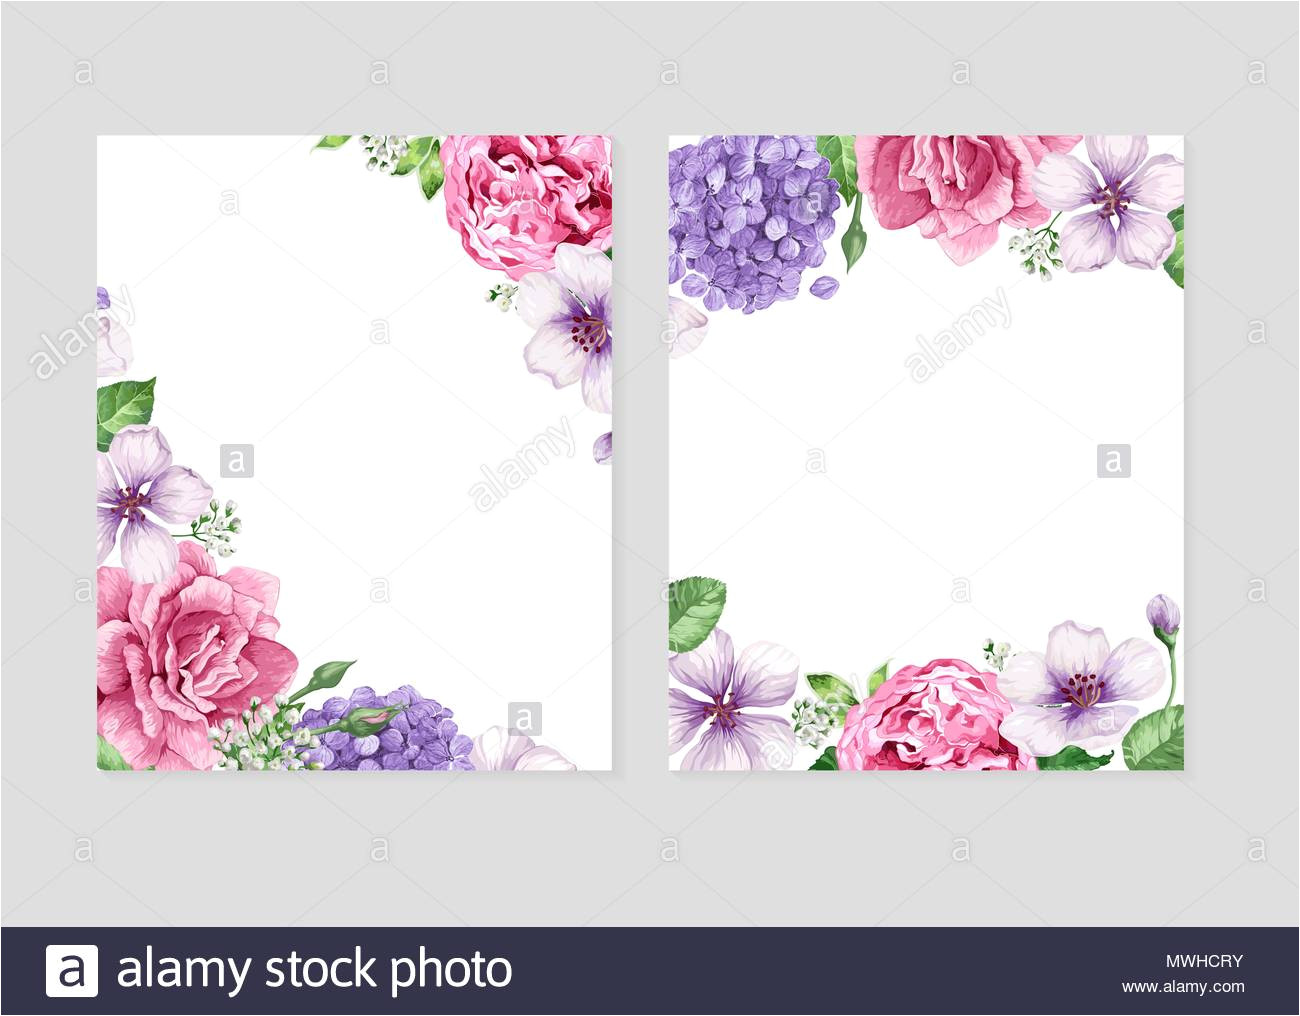 floral blank template set flowers in watercolor style isolated on white background for web banners polygraphy wedding invitation border image187853343